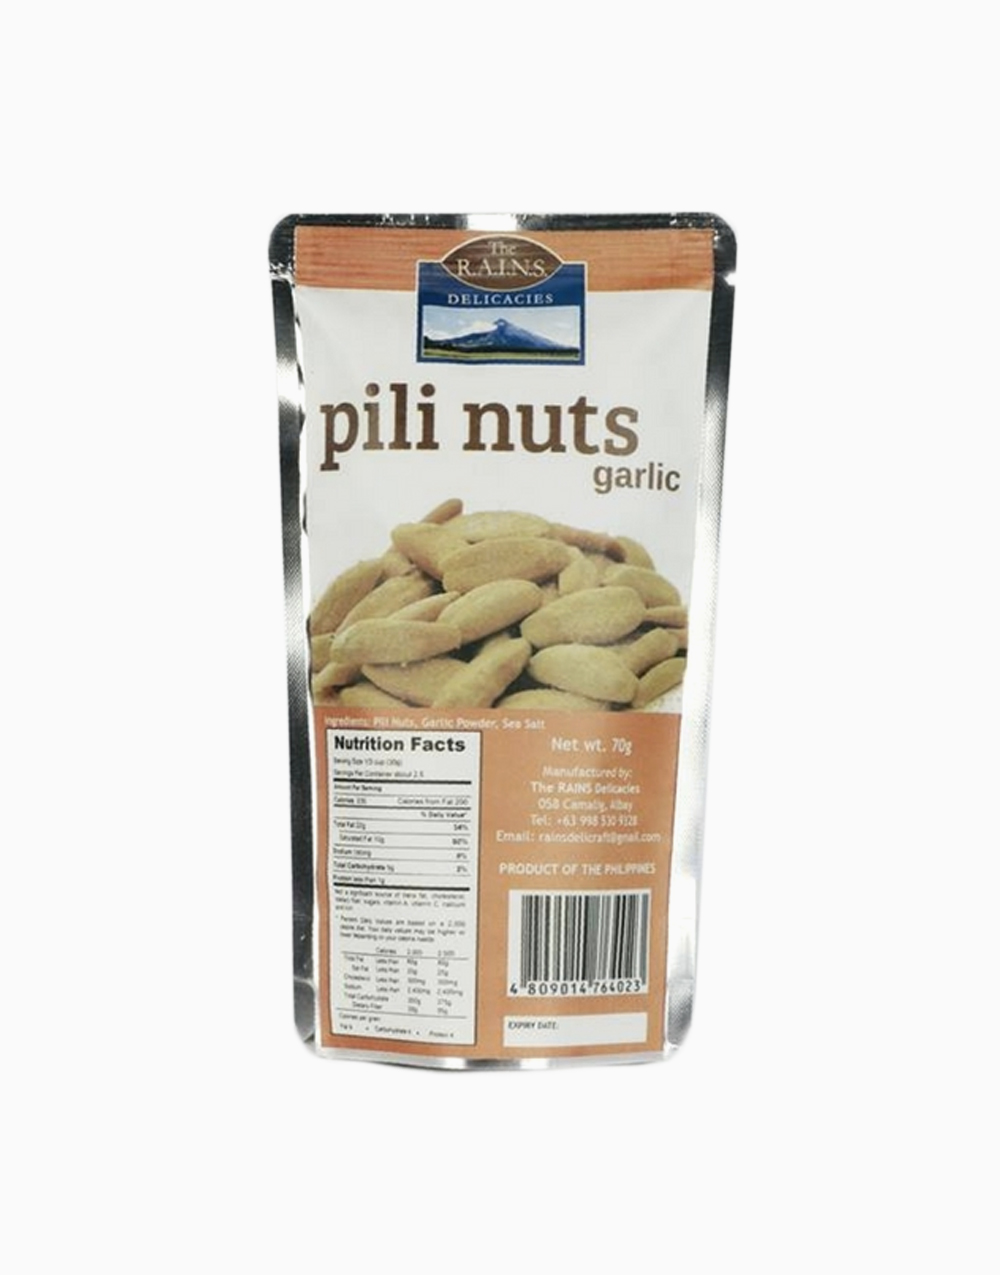 Garlic Pili Nuts by Rains Delicacies